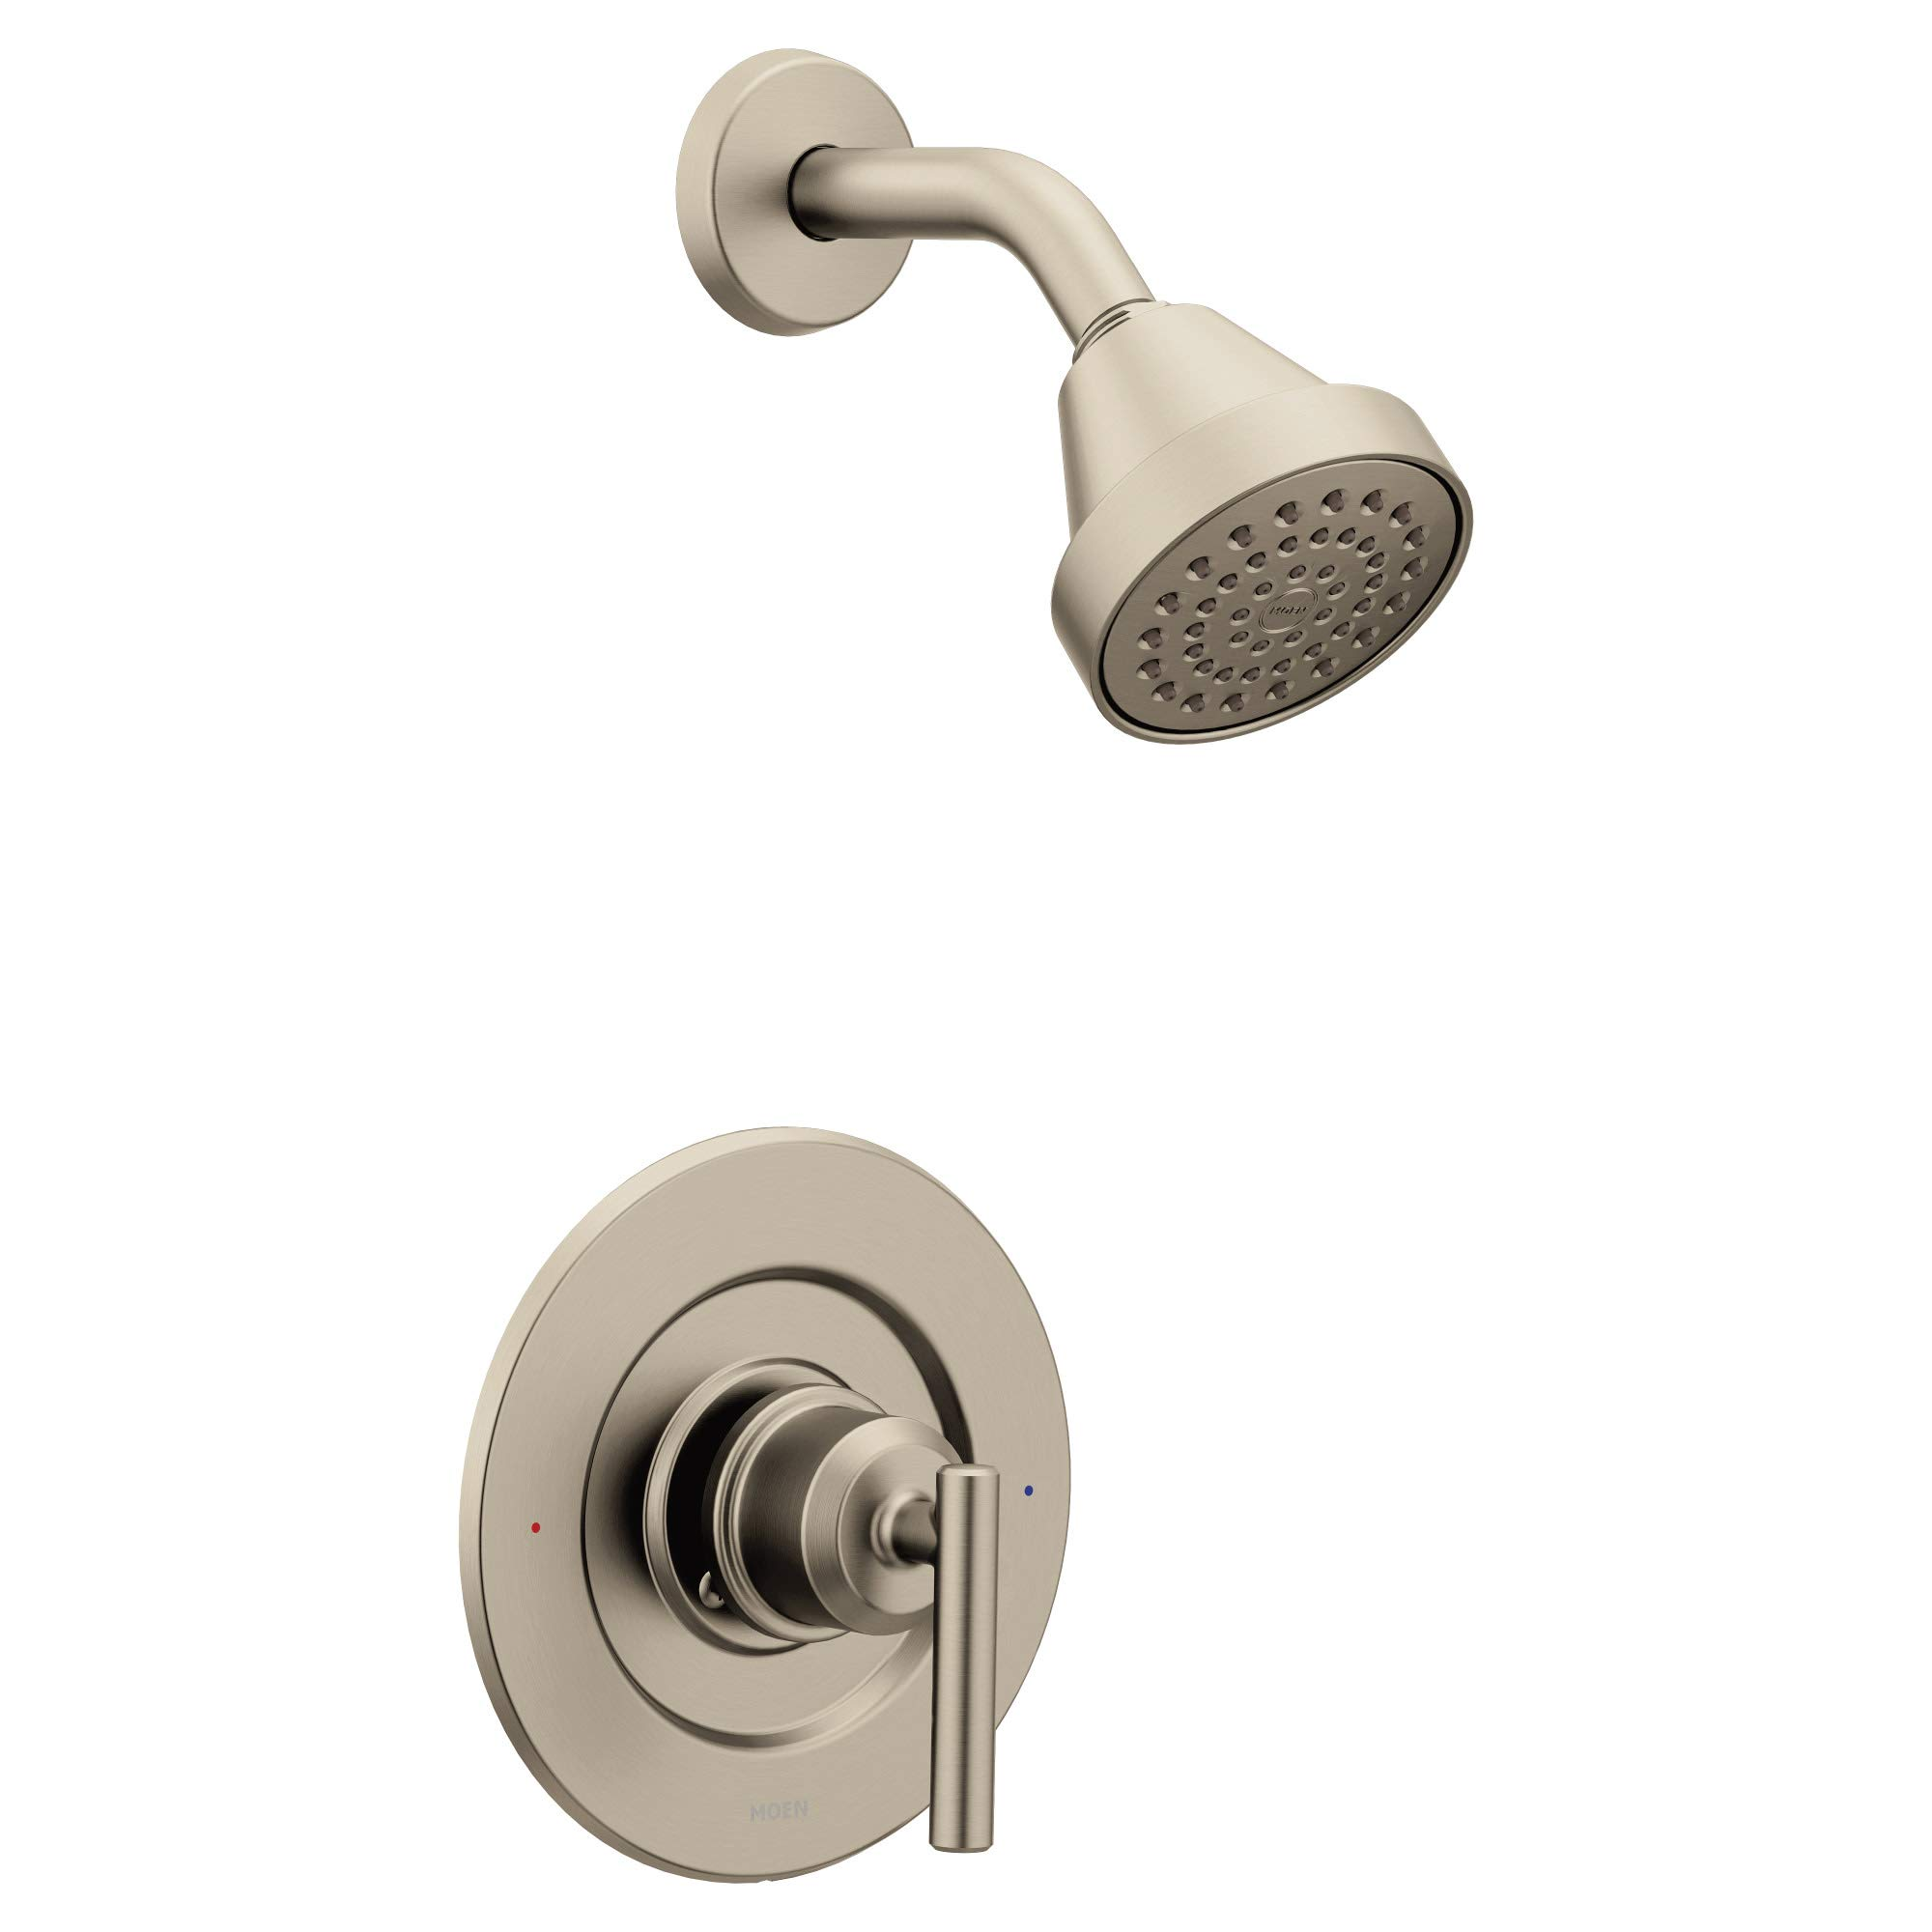 Moen T2902EPBN Gibson Posi-Temp Pressure Balancing Eco-Performance Modern Shower Only Trim, Valve Required, Brushed Nickel by Moen